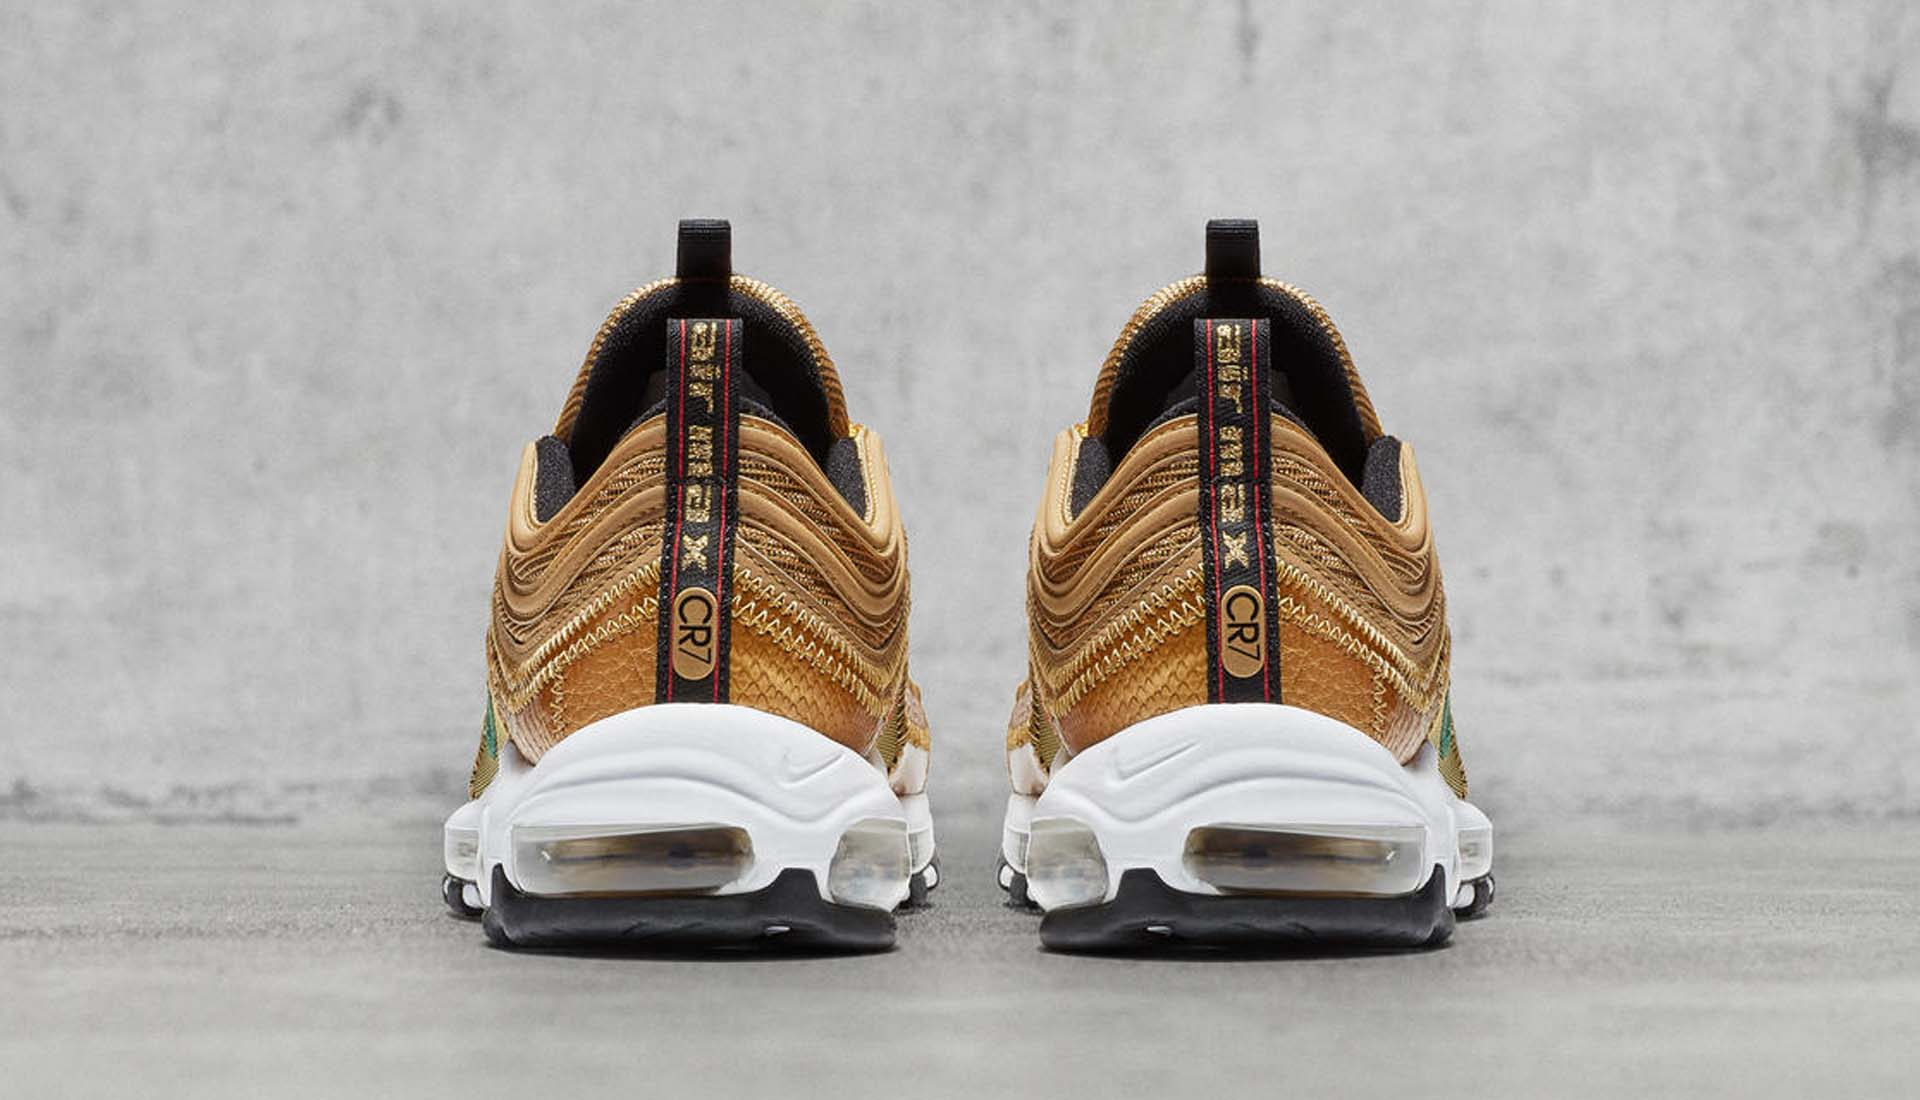 226ac18720 Nike Launch The Air Max 97 CR7 Sneakers - SoccerBible